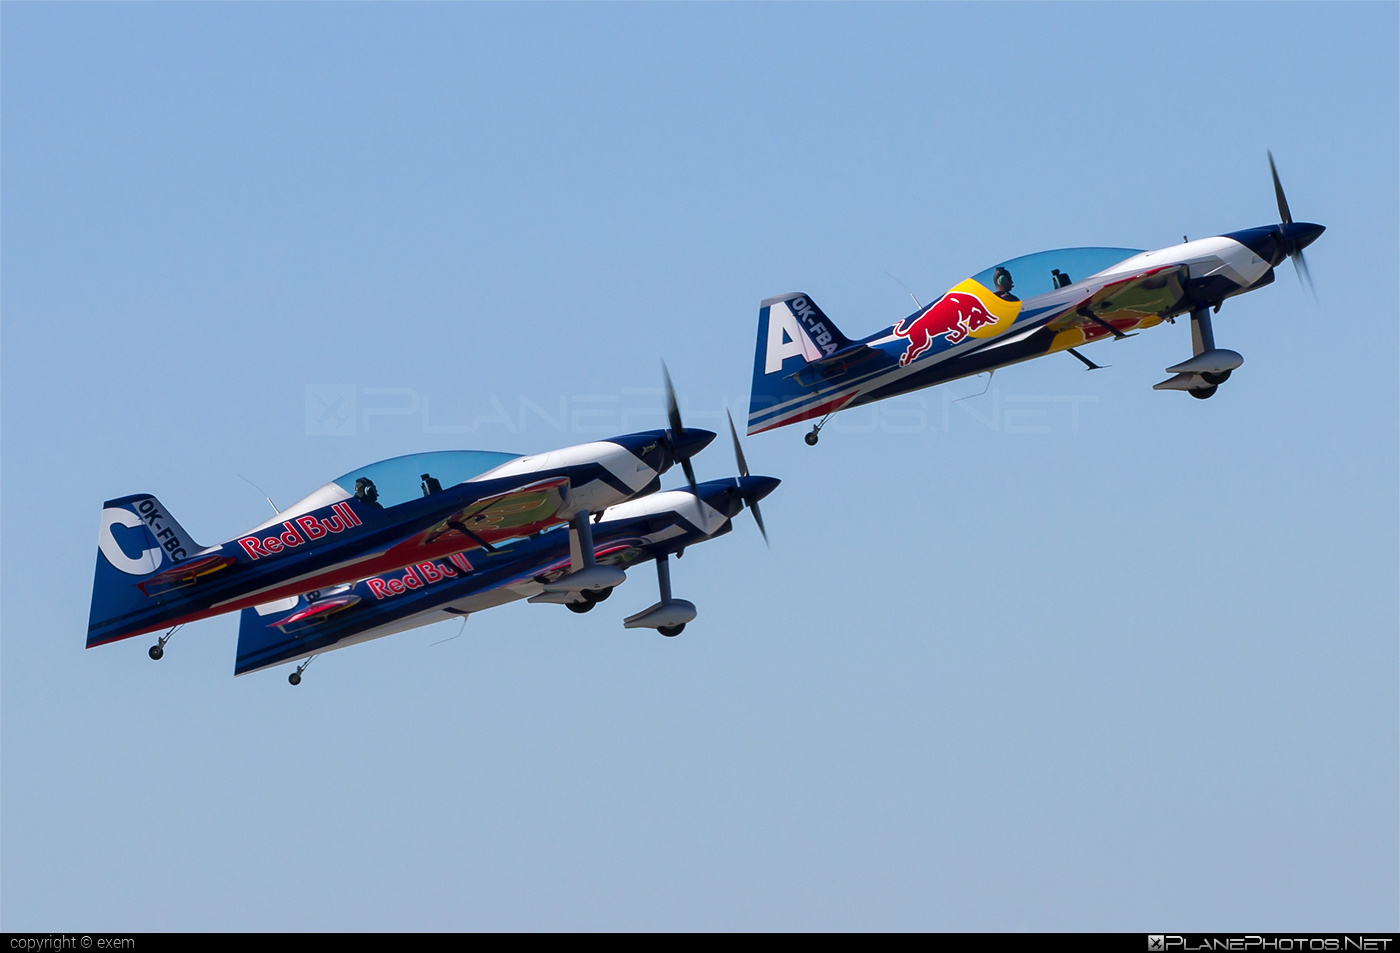 XtremeAir XA42 Sbach 342 - OK-FBA operated by The Flying Bulls Aerobatic Team #sbach #sbach342 #theflyingbullsaerobaticteam #xa42 #xtremeair